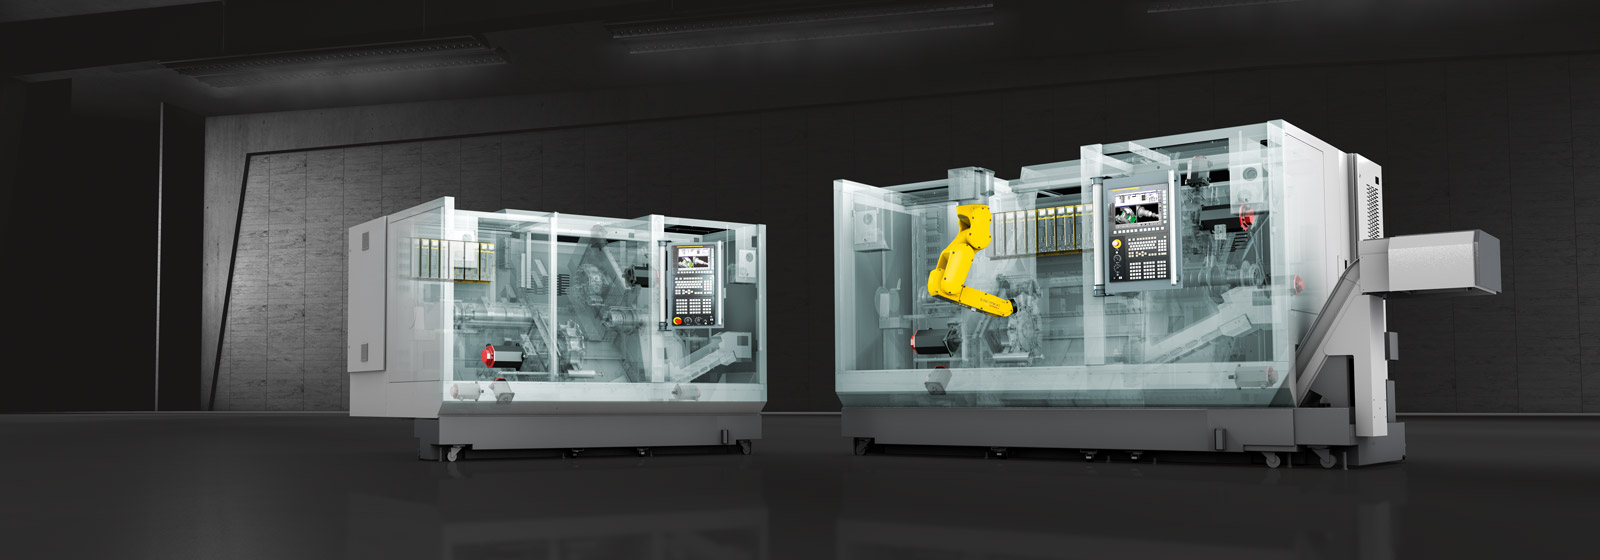 FANUC 3DH 2MC ghost